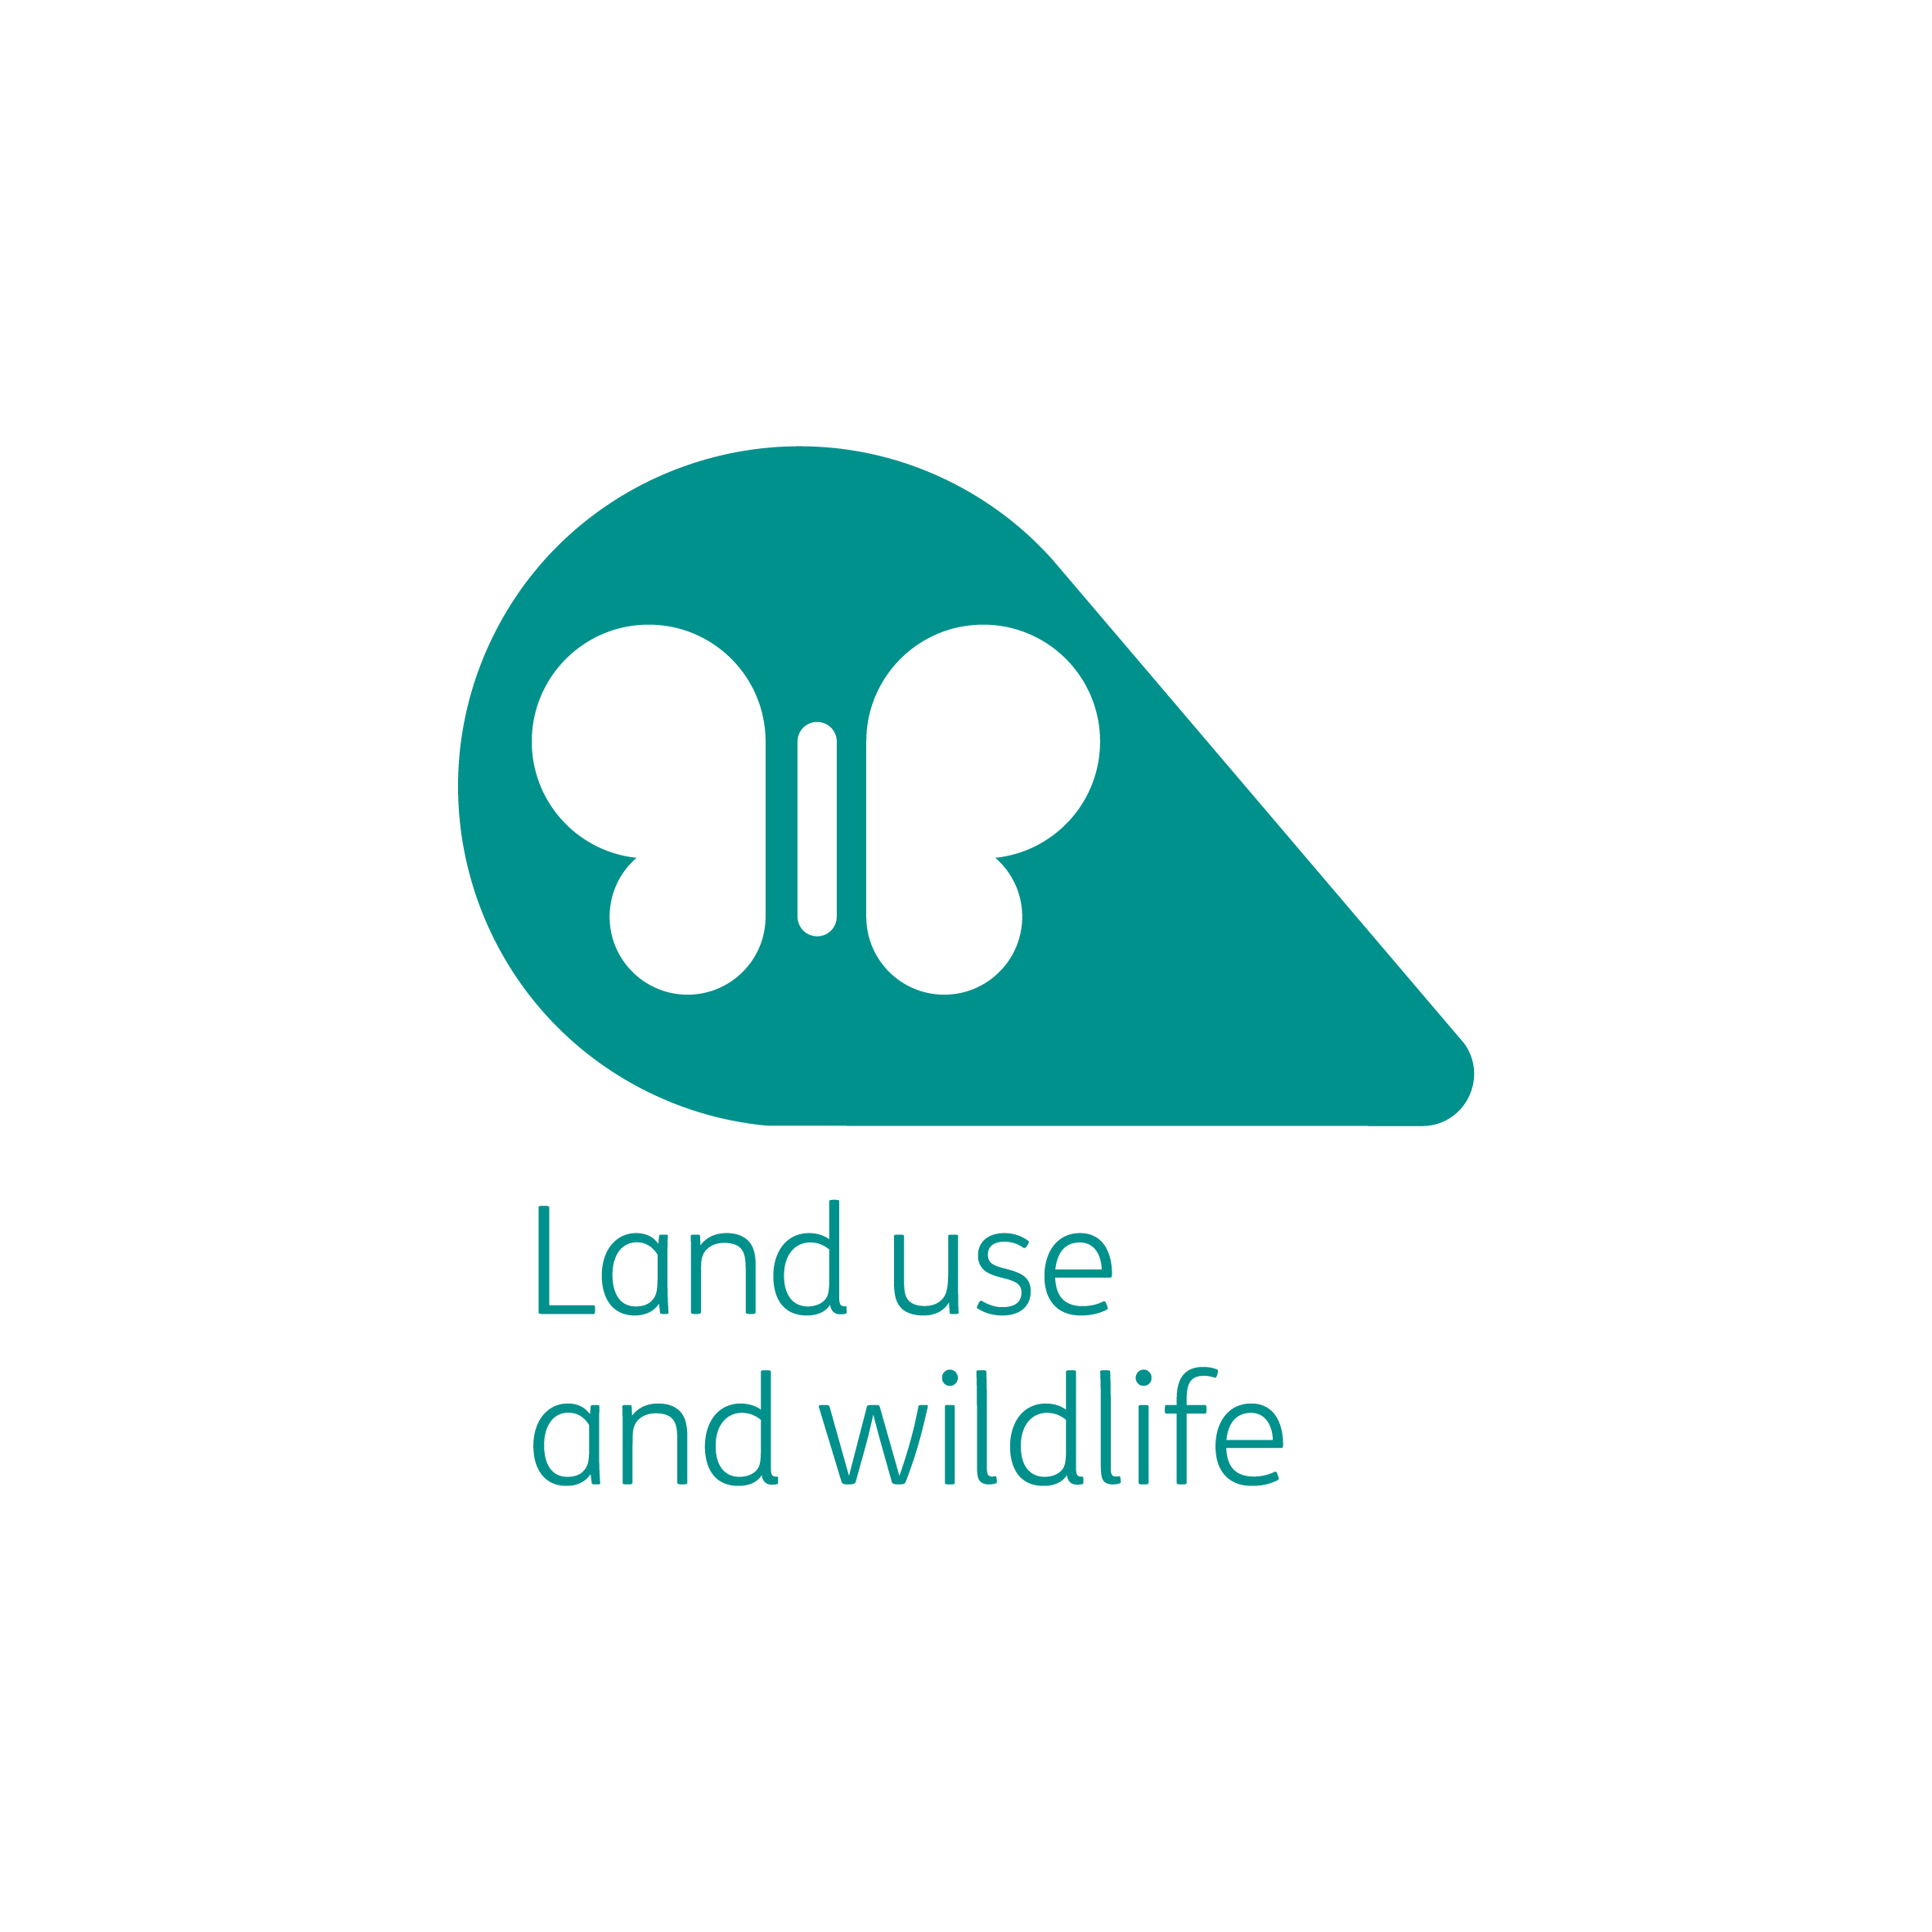 Land use and wildlife petal